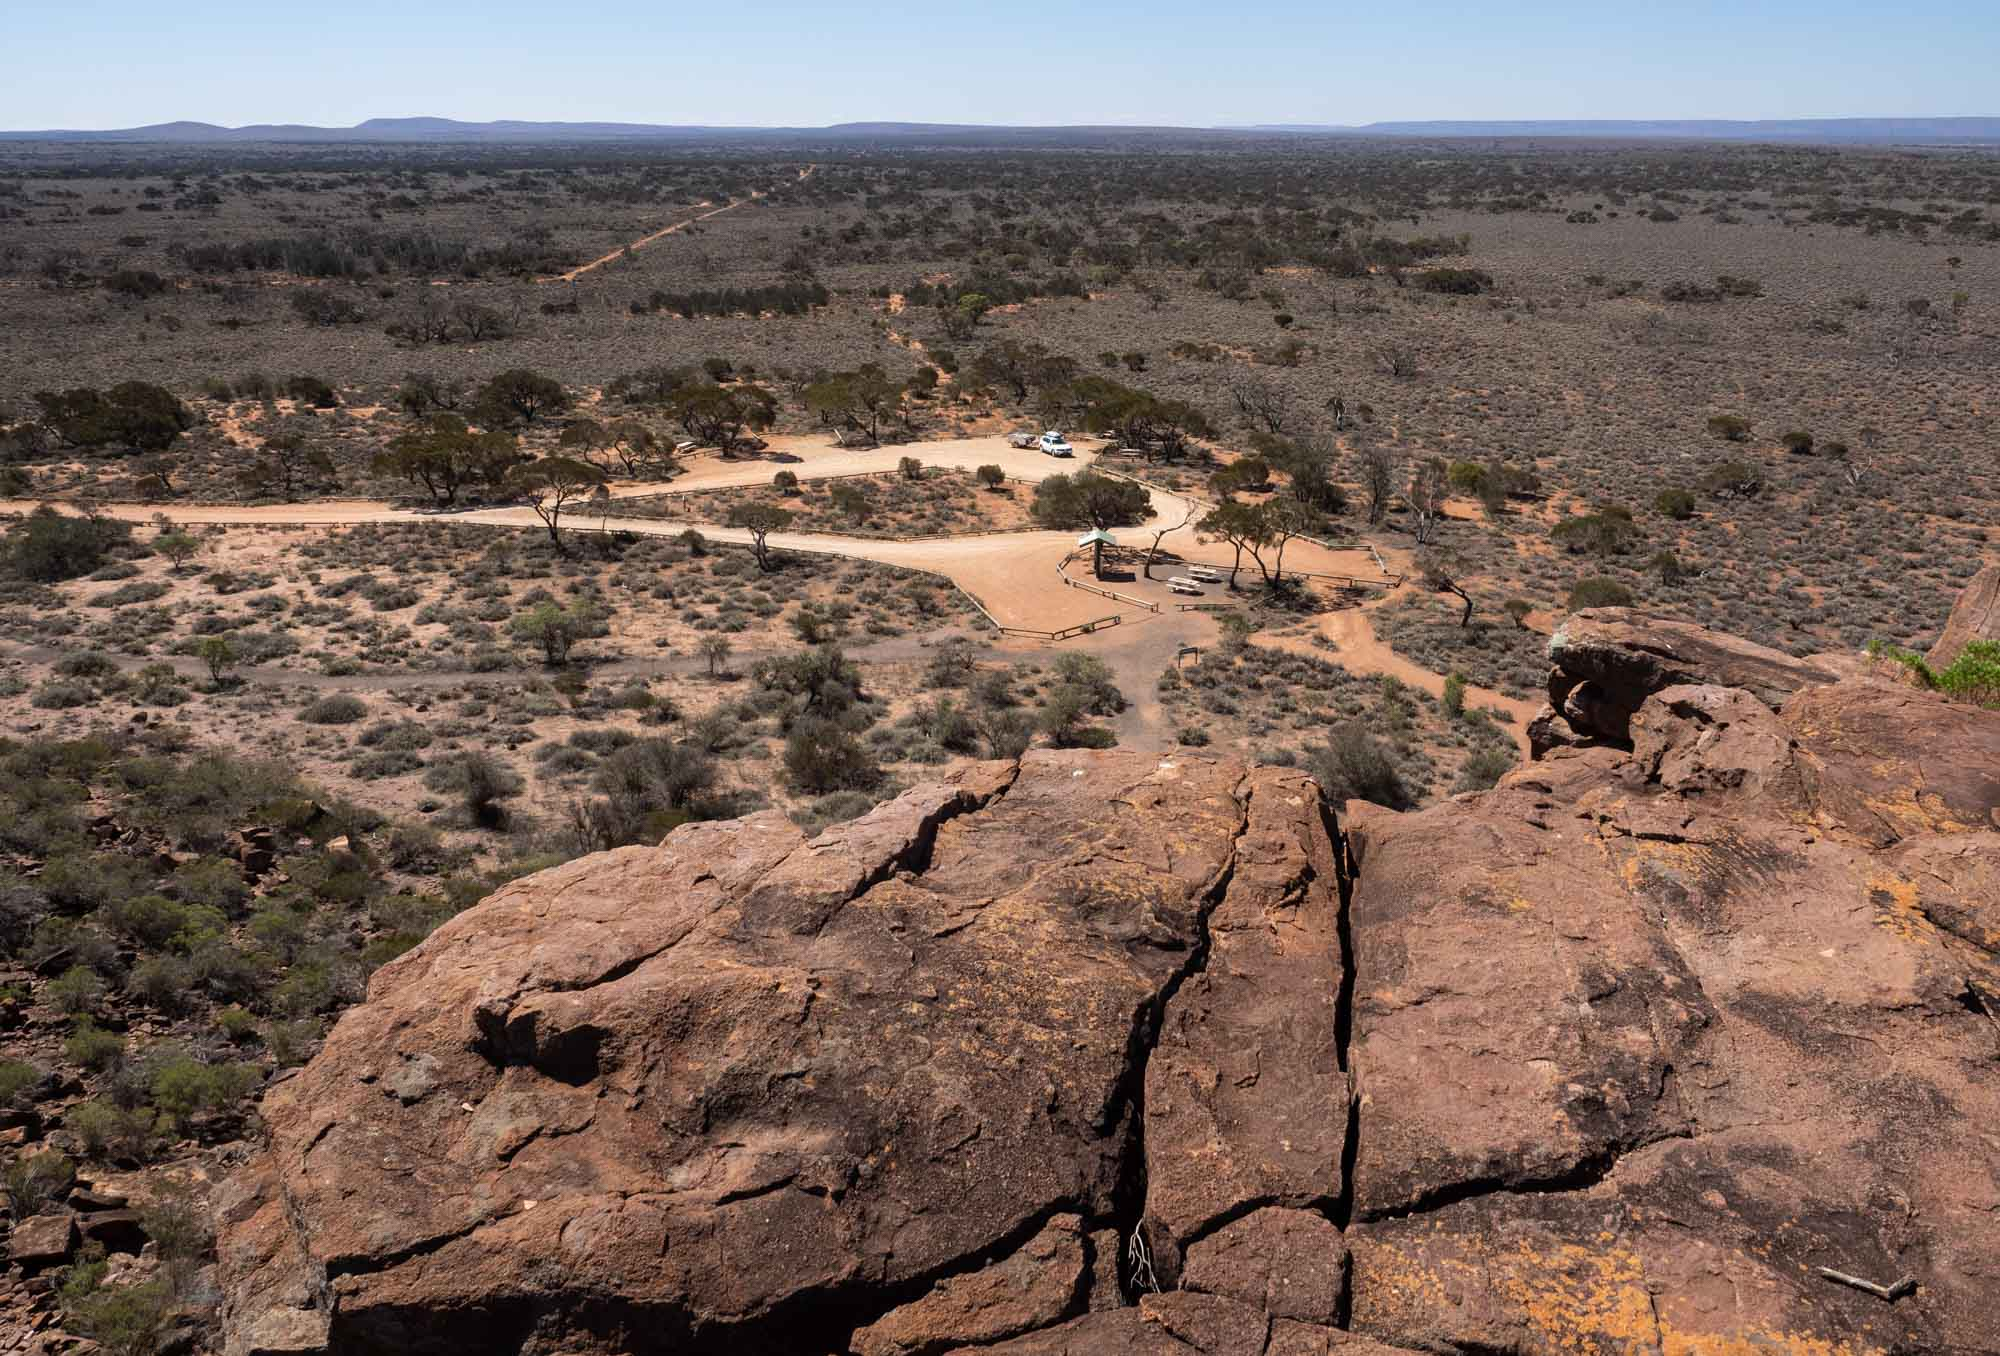 The view from atop Wild Dog Hill. That's our trusty little car down there, waiting for us in the baking heat.